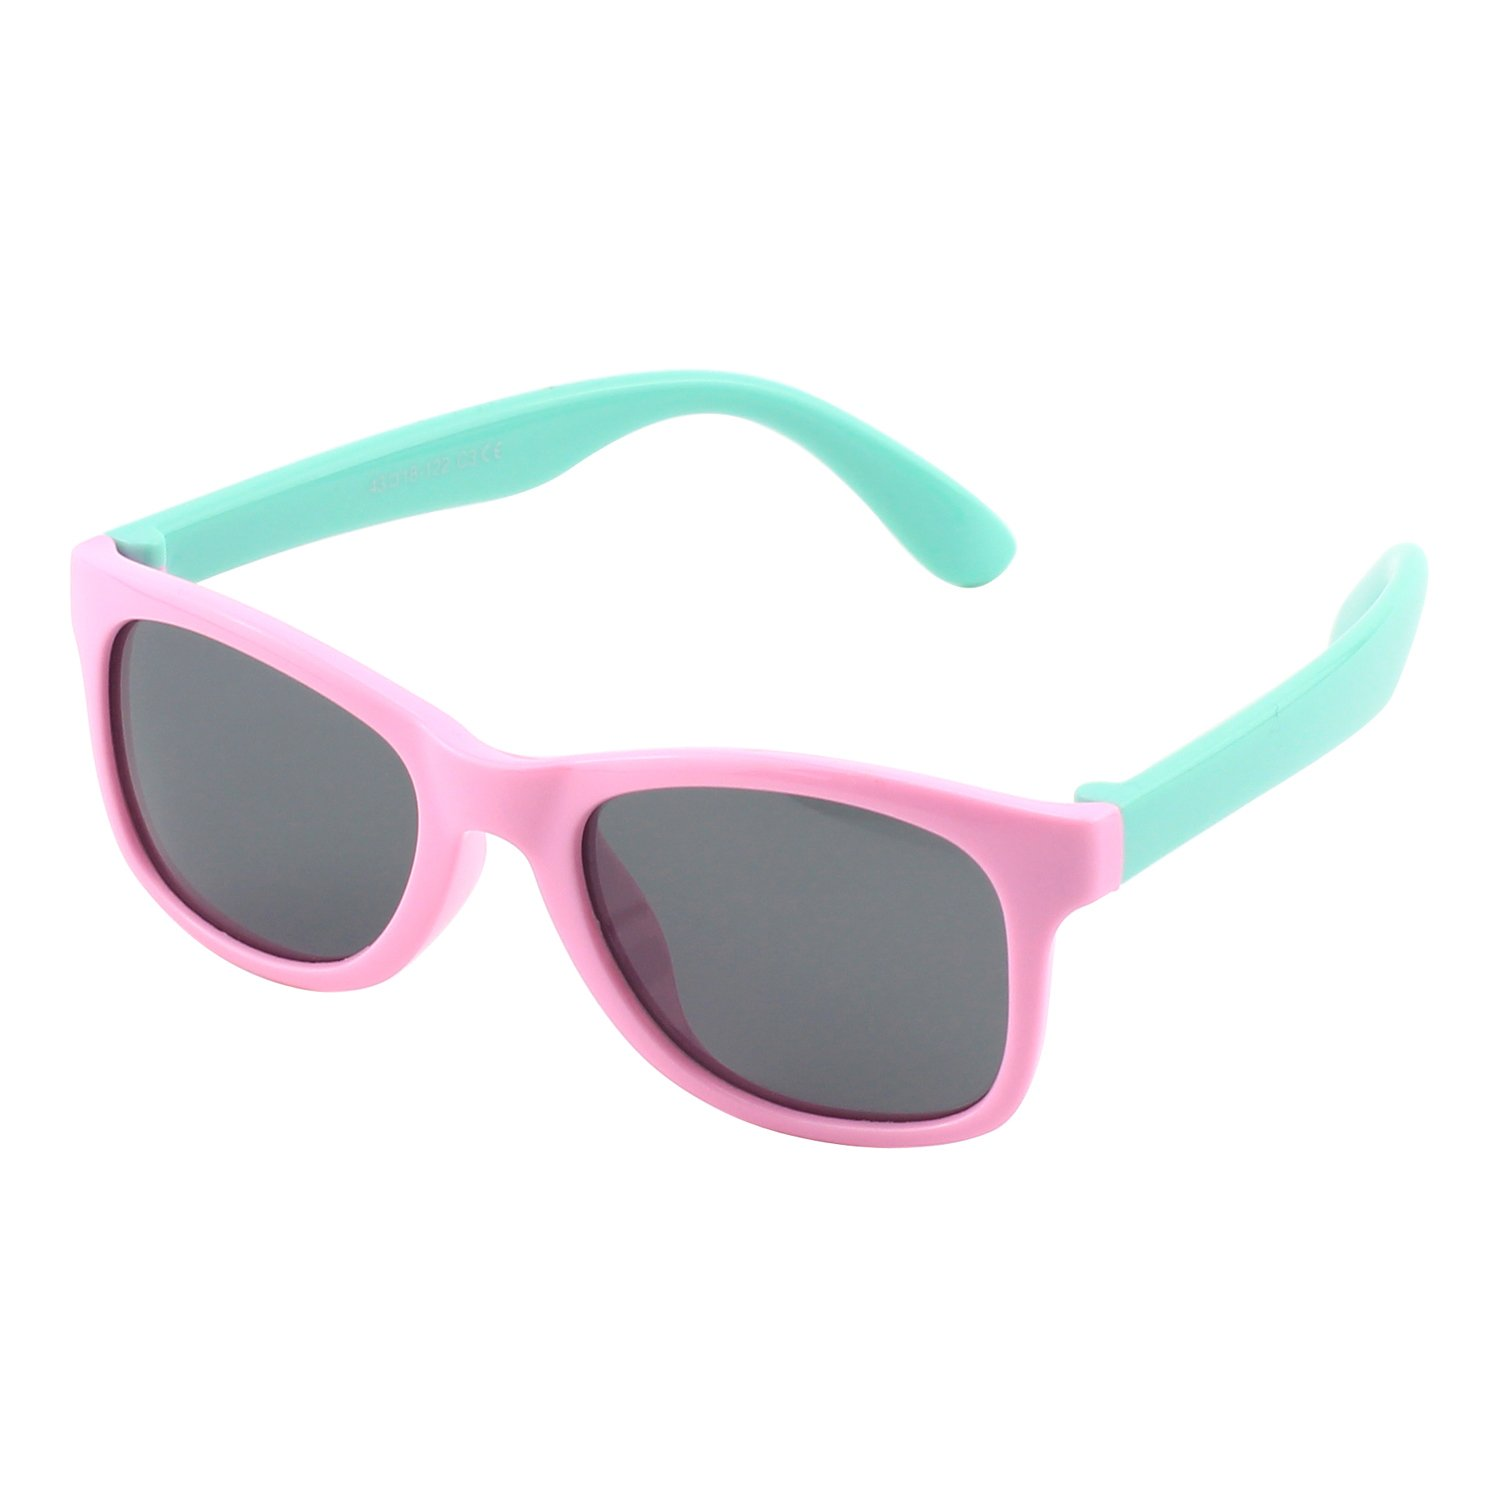 CGID Rubber Flexible Kids Polarized Sunglasses Glasses for Baby and Children Age 3-5,K25 CSFBAET825-7